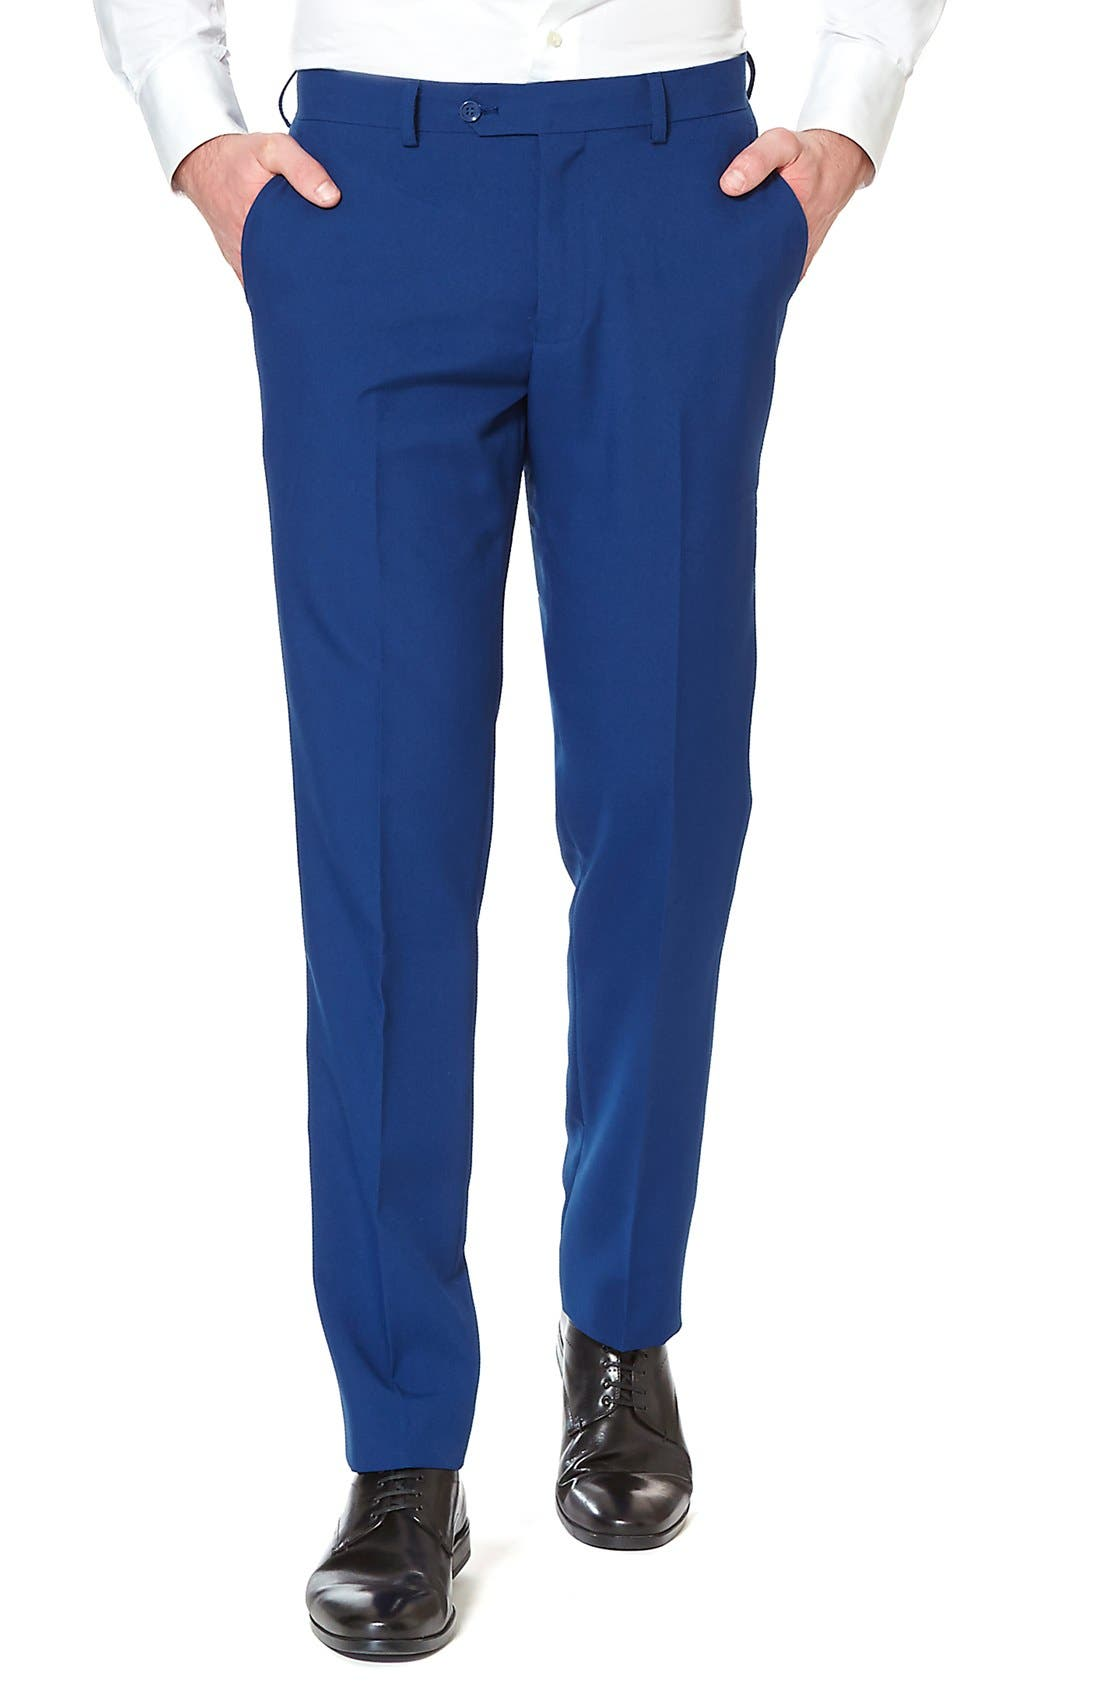 'United Stripes' Trim Fit Suit with Tie,                             Alternate thumbnail 3, color,                             Red/ Blue/ White